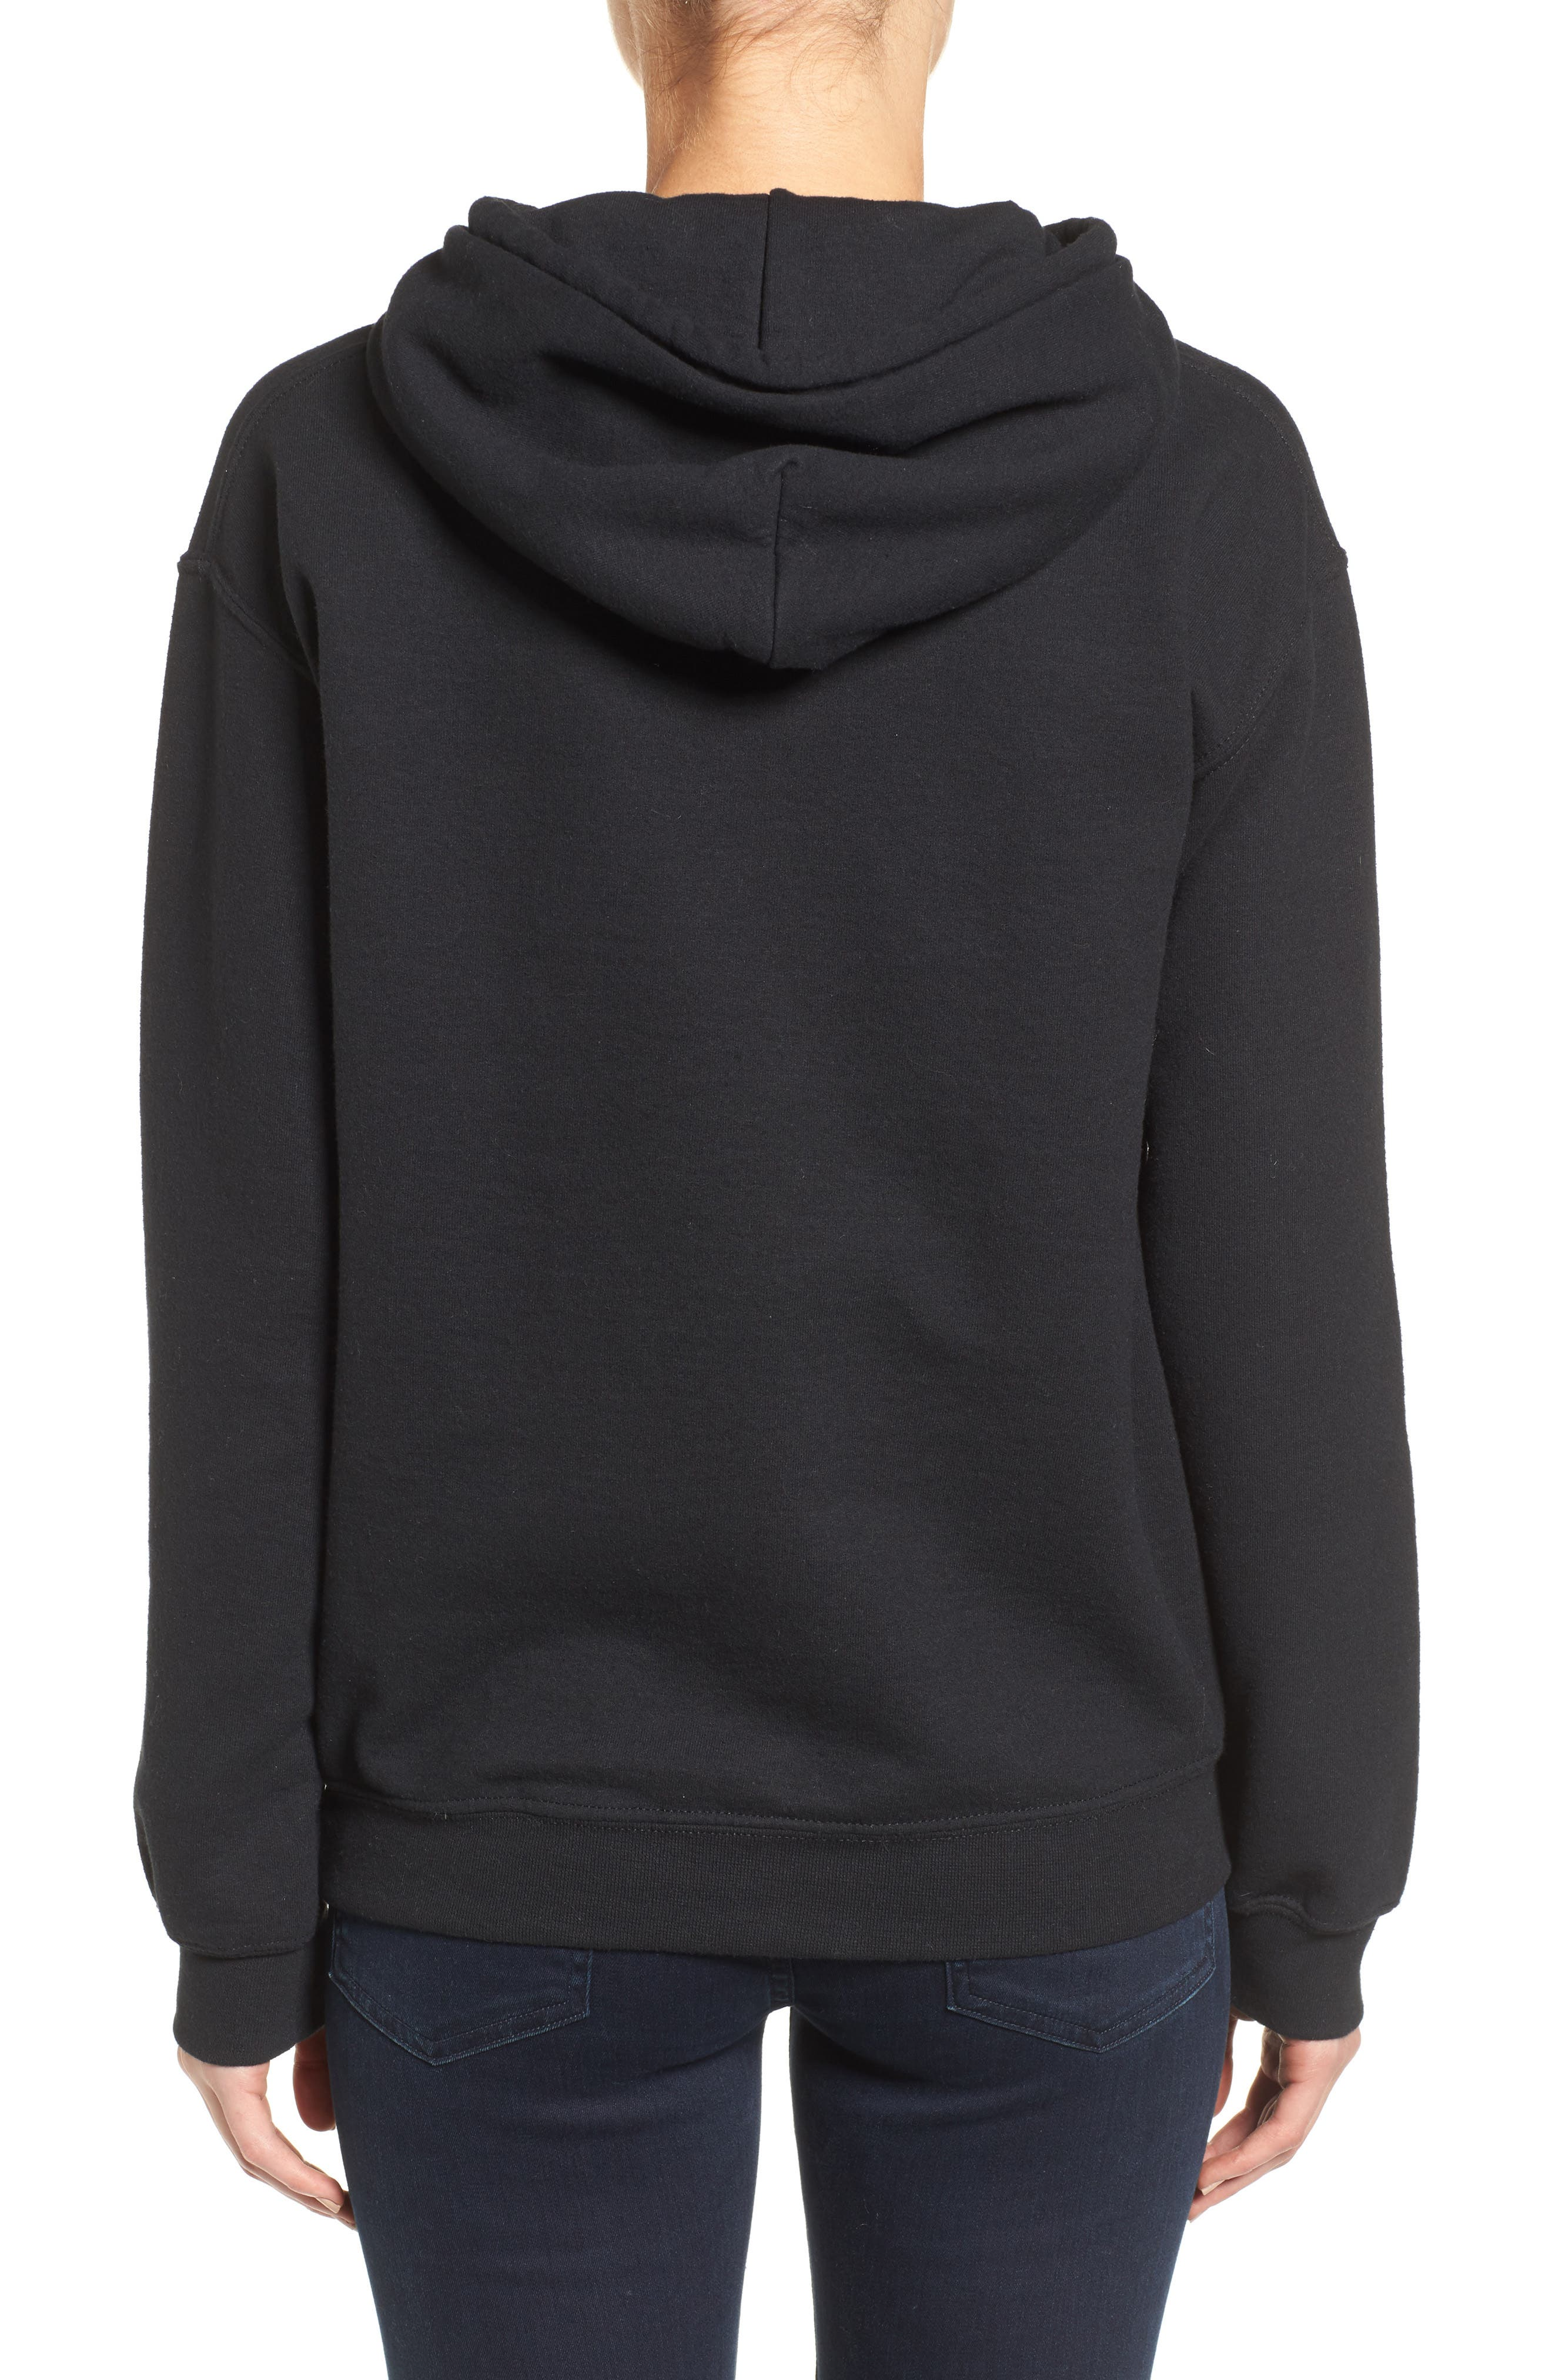 Girl Power Hoodie,                             Alternate thumbnail 3, color,